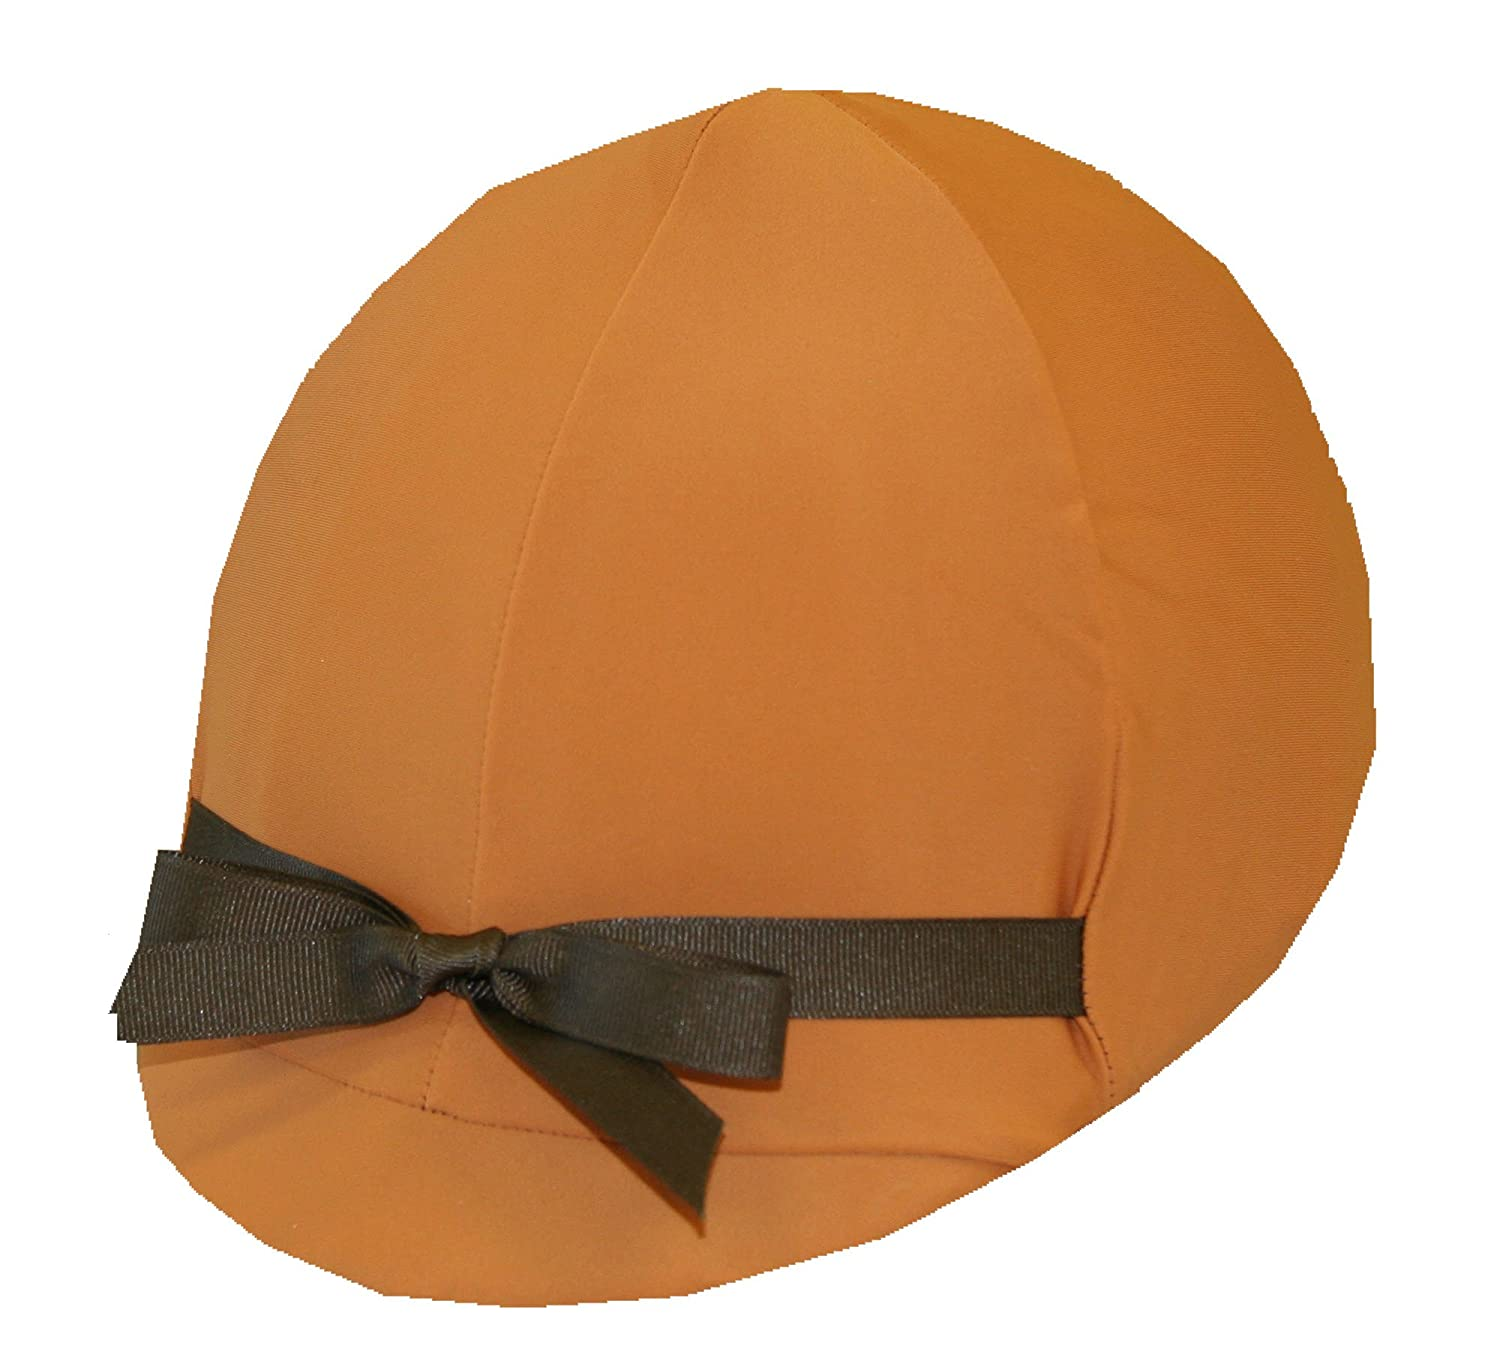 Equestrian Riding Helmet Cover - Rust Helmet Covers Etc.